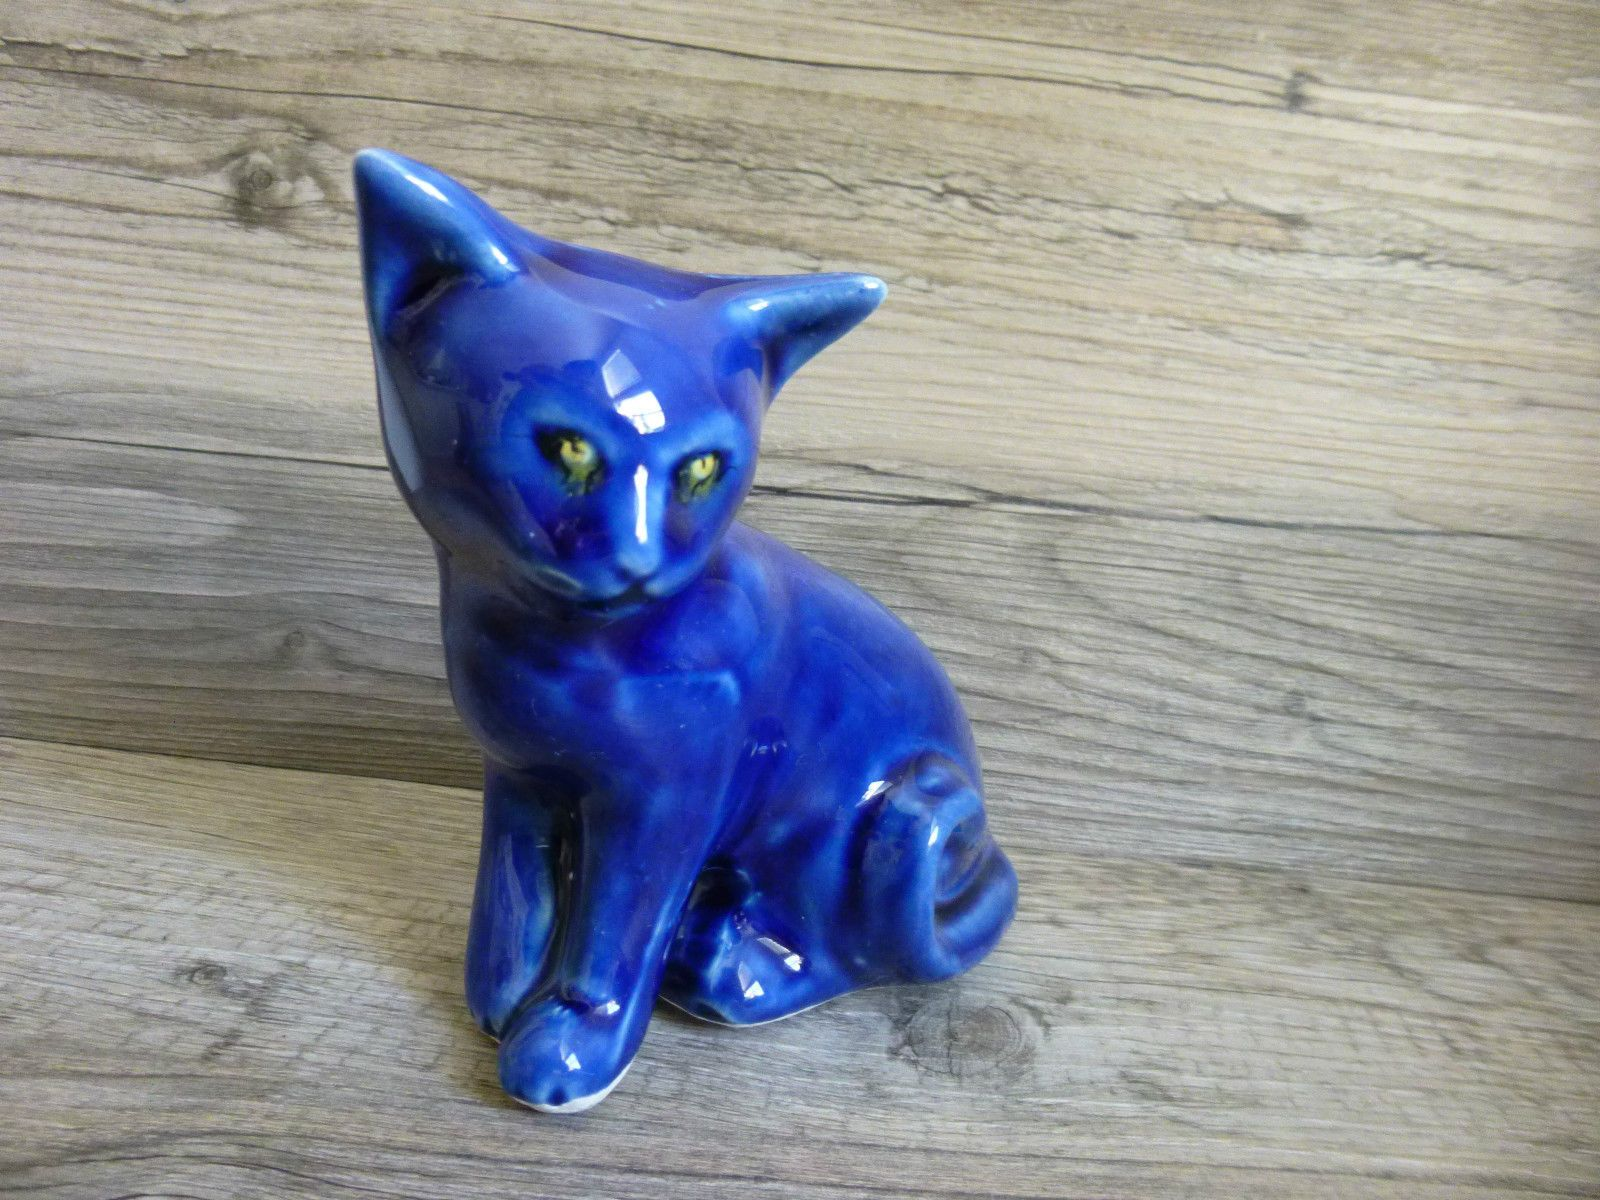 Vtg Blue Pottery Sitting Cat Statue Curled Tail Striking